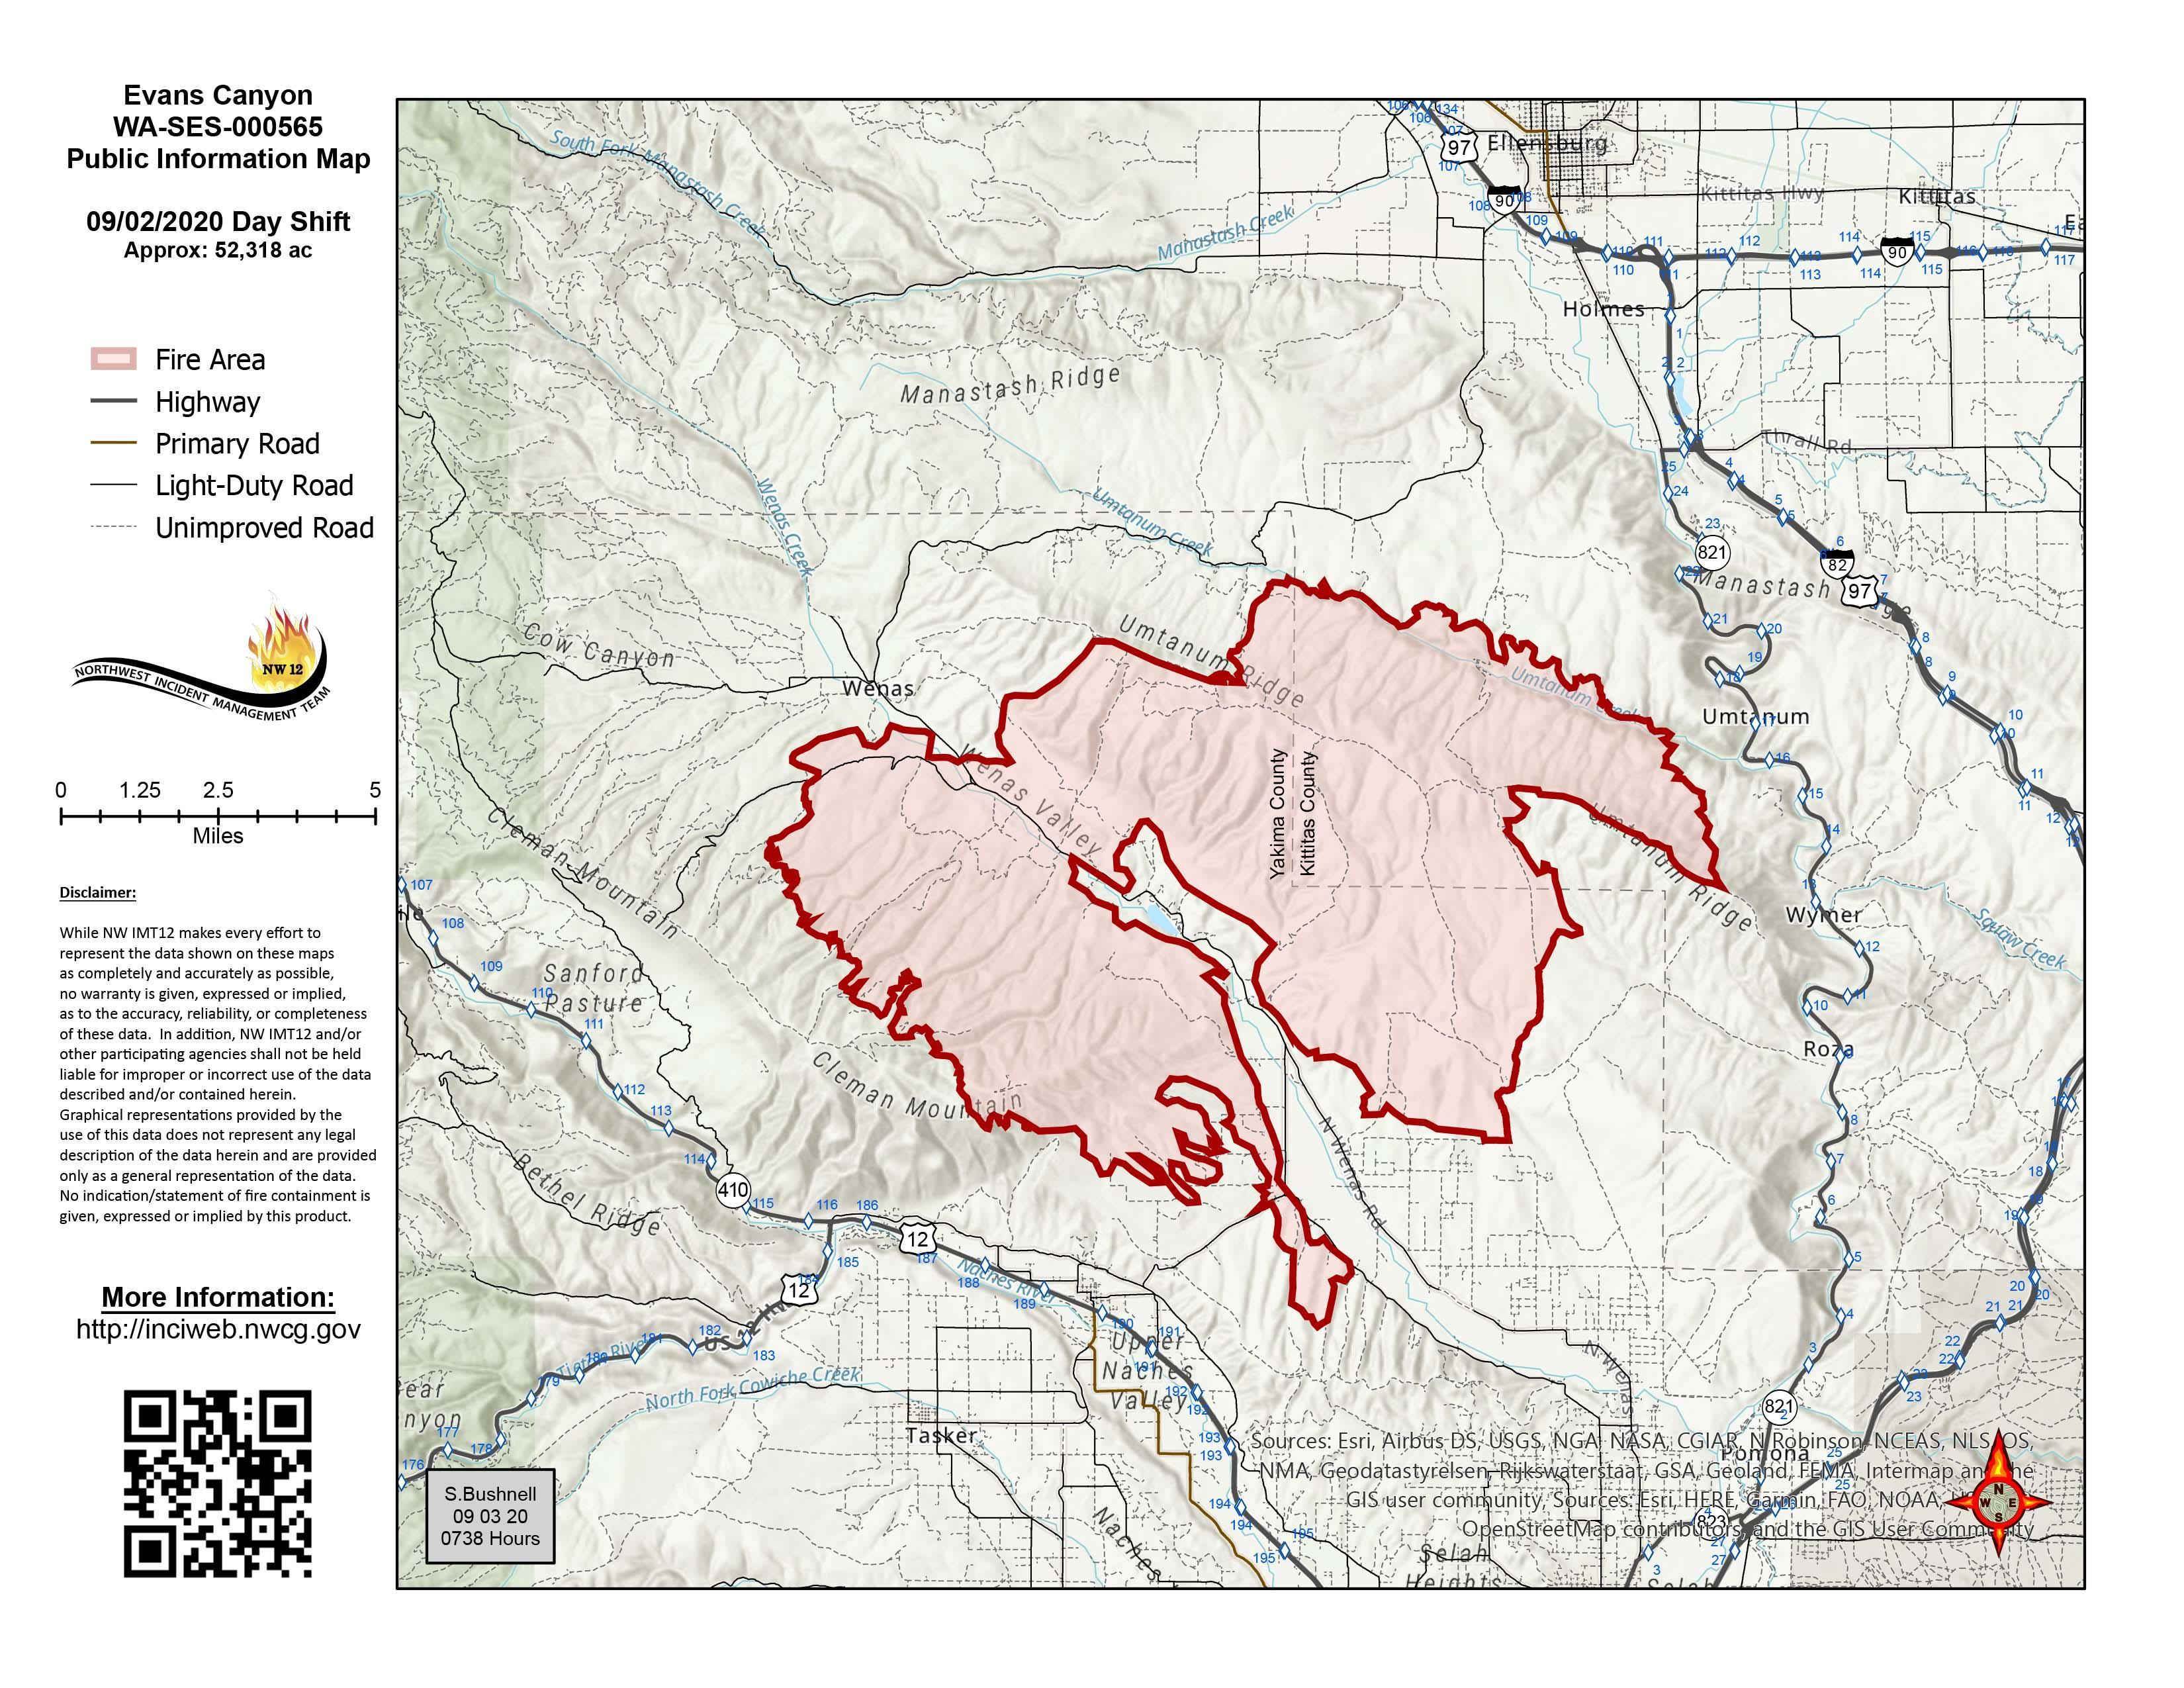 Evans Canyon Fire Map - September 3